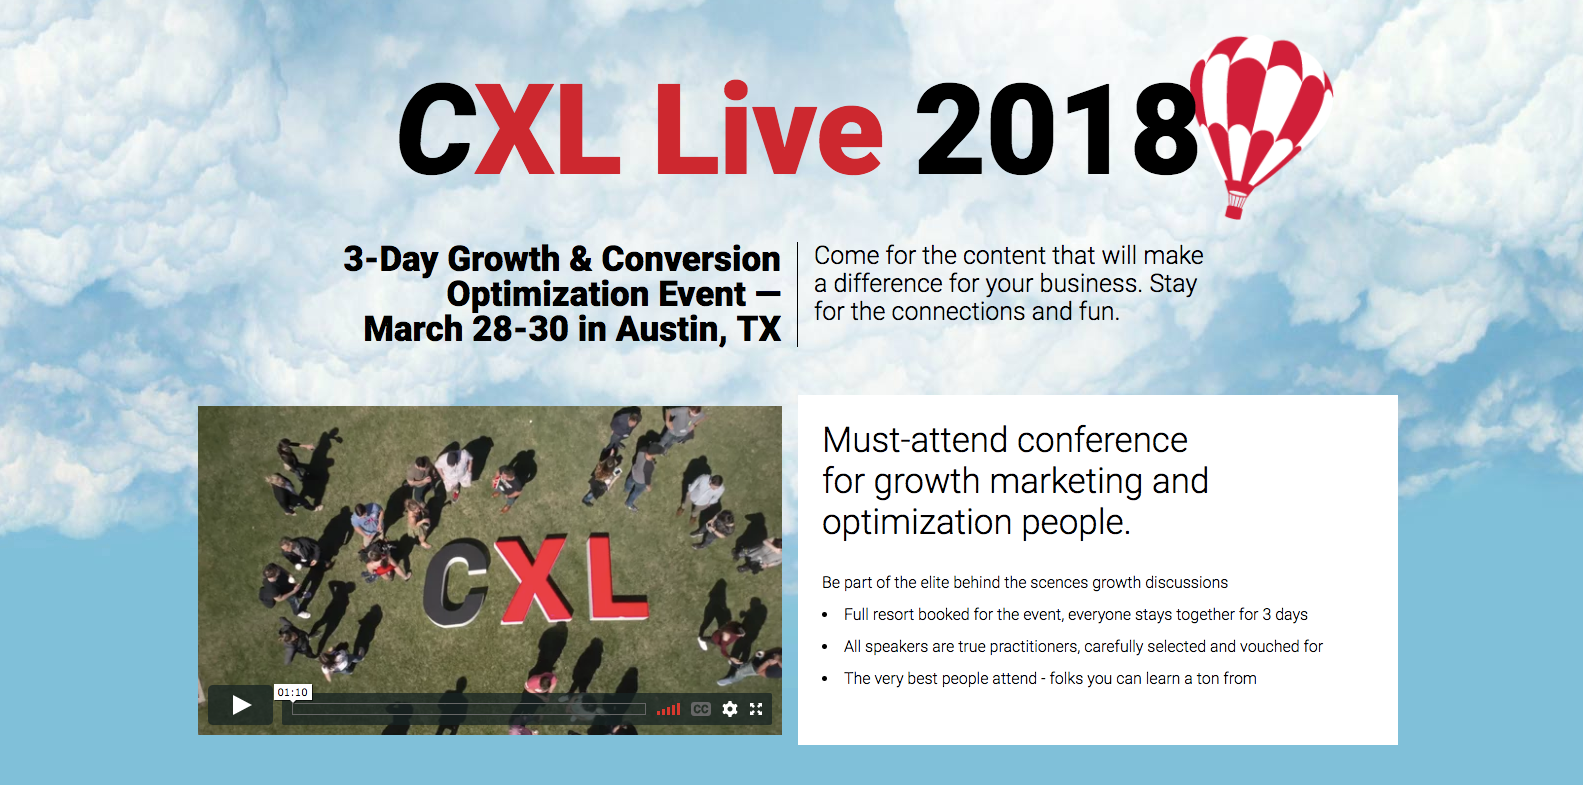 CXL Live 2018 Marketing Conferences